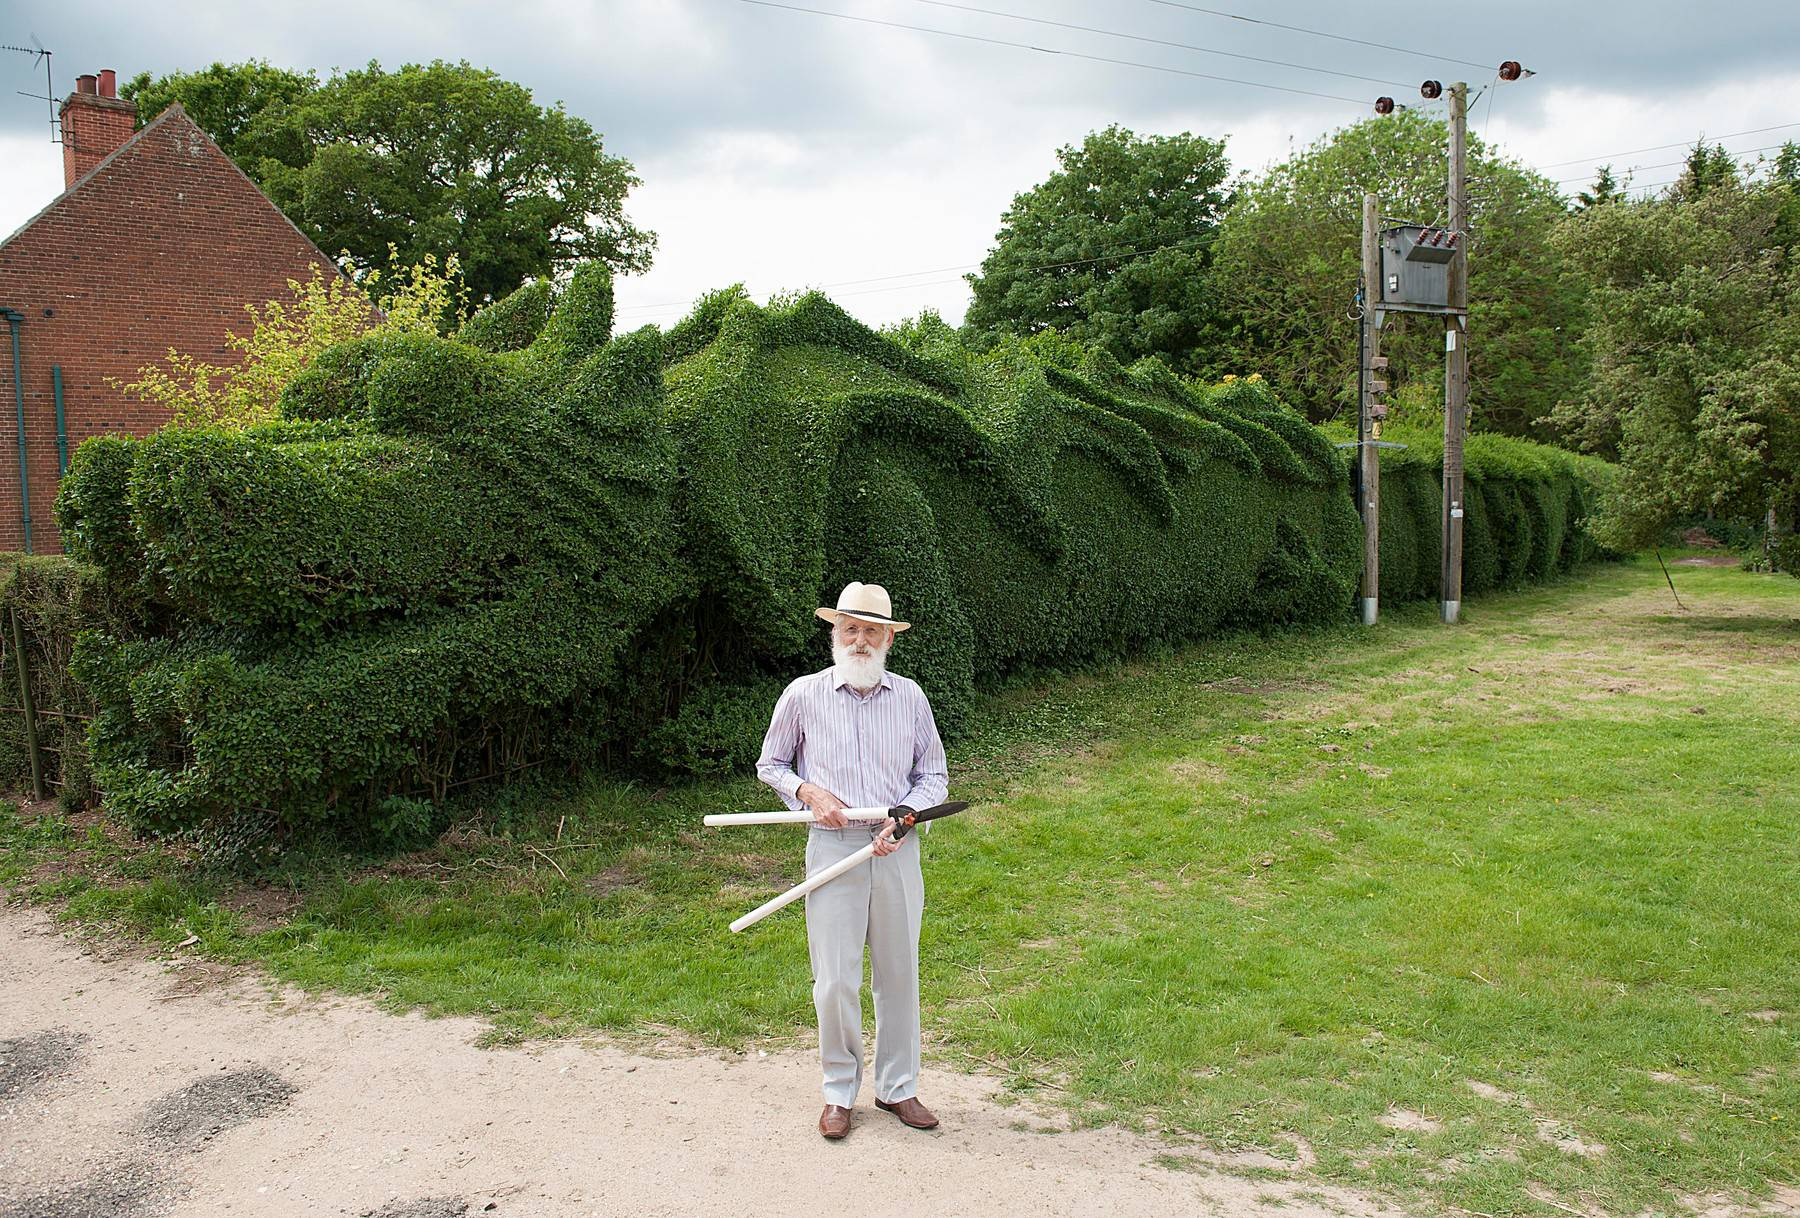 Clipping This Hedge Is A Monster Job